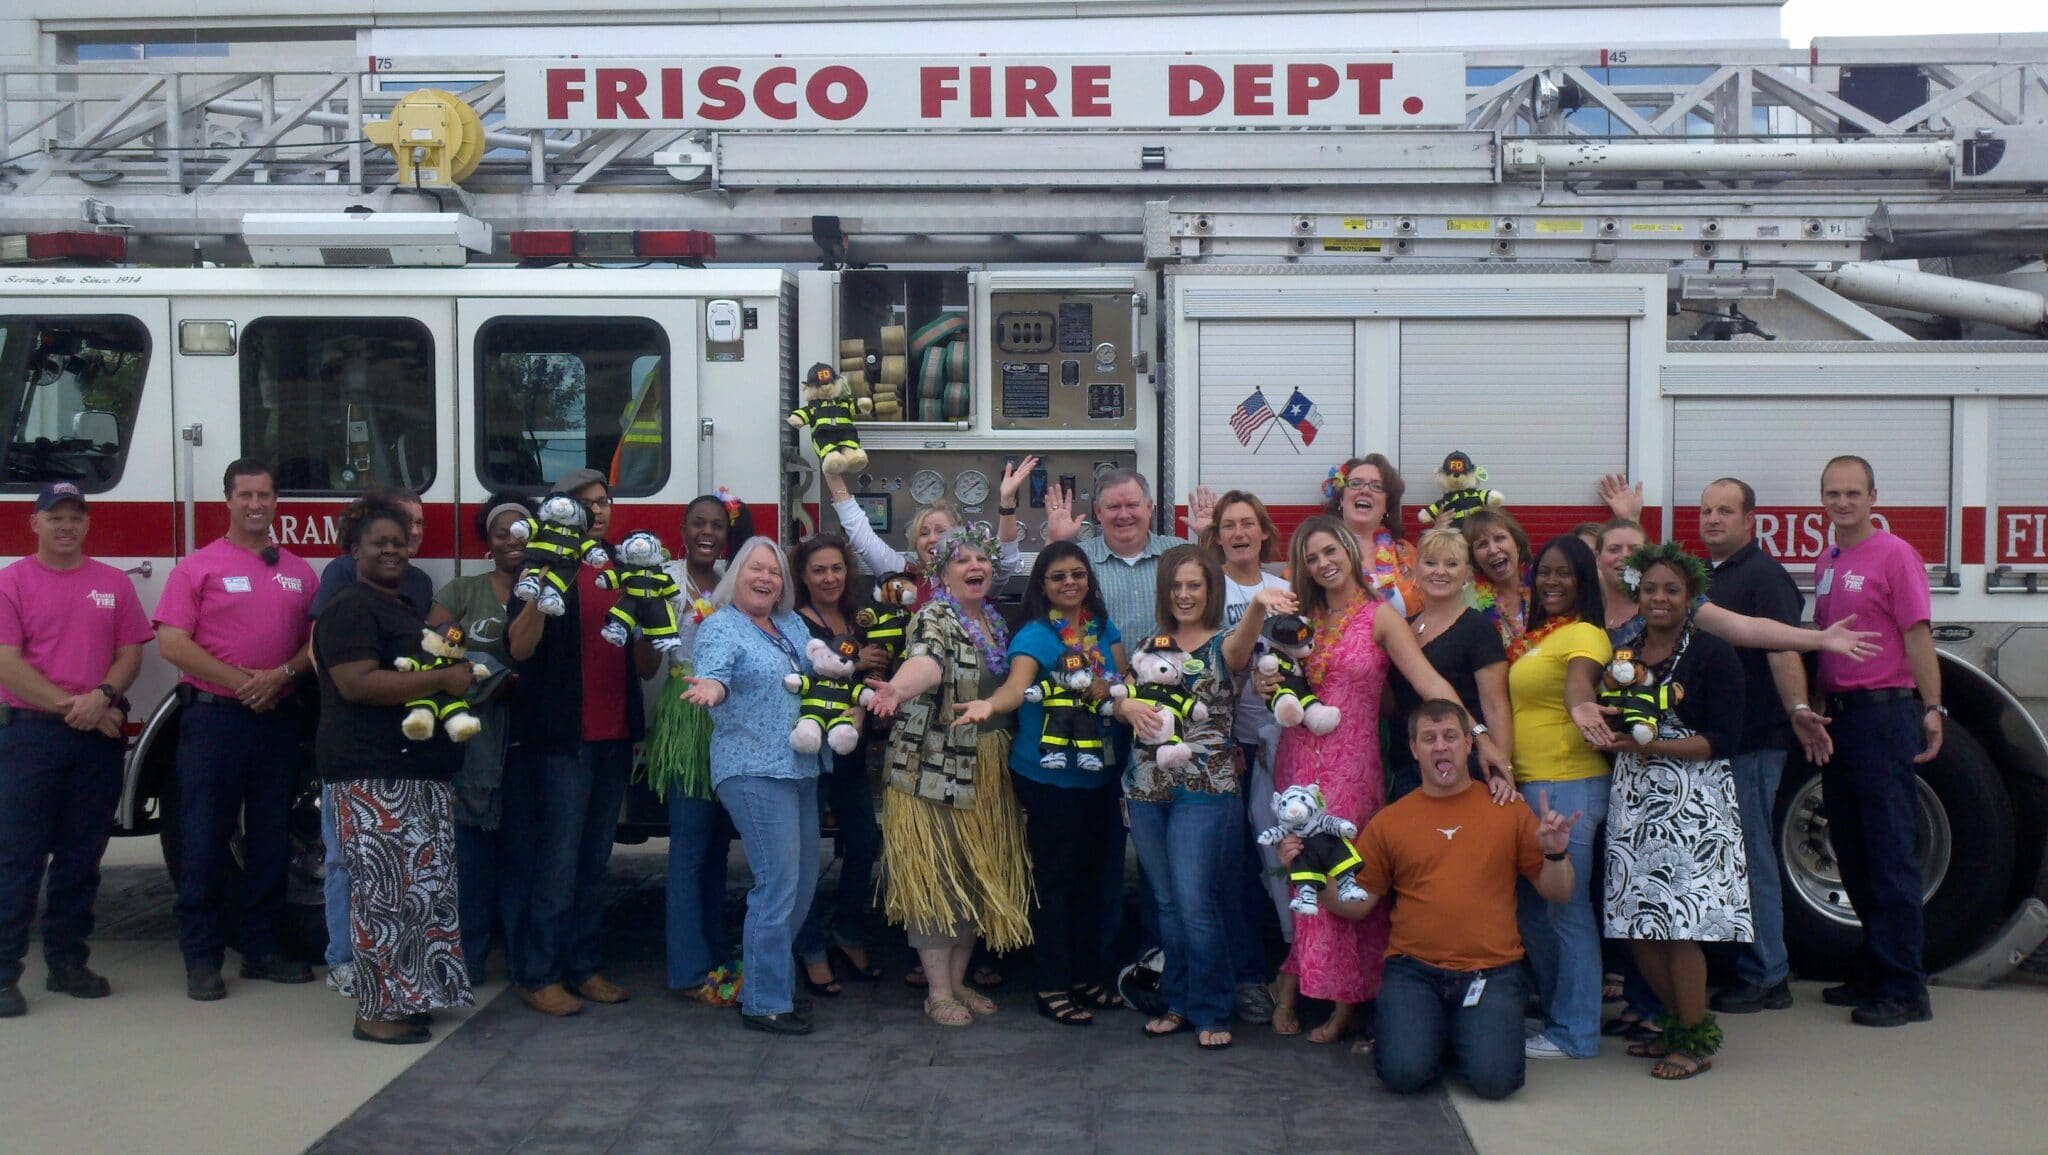 Team in Frisco, TX poses for a teddy bear team building event photo.